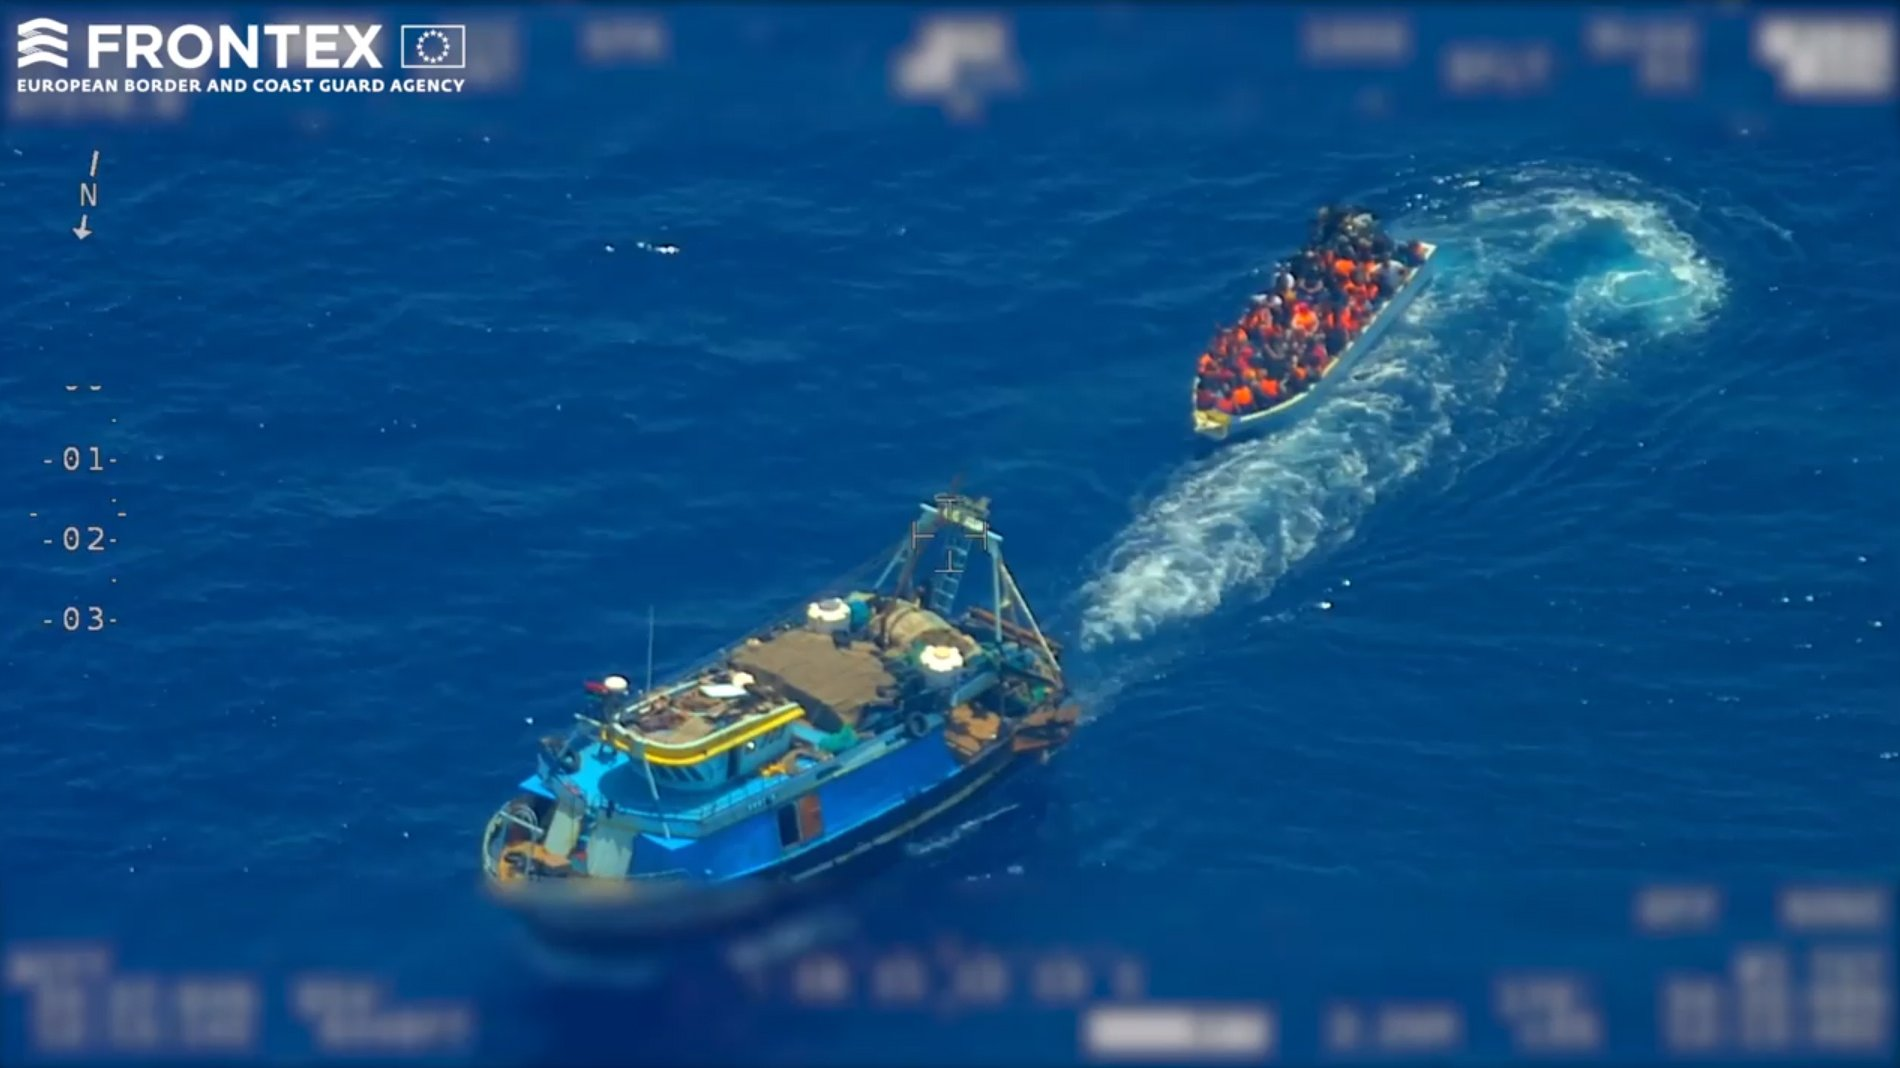 epa07669907 A screen grab taken from an undated handout video made available by the European Border and Coast Guard Agency (Frontex) on 22 June 2019 shows a fishing trawler (L) pulling away from a wooden boat with migrants on board, at high seas in the Mediterranean. According to Frontex, some 80 people emerged from below the deck of the fishing trawler -- a so-called 'mother boat' that people smugglers use to carry large groups of migrants across the sea -- and got into the smaller boat. After the migrant boat was filled with people it slowly headed toward the Italian island of Lampedusa as the fishing trawler quickly moved away. Frontex said that it used a plane and a drone to observe the fishing trawler and the boat with migrants for several hours; it also alerted Italian and Maltese authorities and the EUNAVFOR Med (Operation Sophia). Italian authorities, who are investigating the case, started a complex operation that caught up with the bigger vessel and arrested the suspected people smugglers and the migrant boat was intercepted in the Italian waters.  EPA/FRONTEX, THE EUROPEAN BORDER AND COAST GUARD AGENCY HANDOUT  HANDOUT EDITORIAL USE ONLY/NO SALES